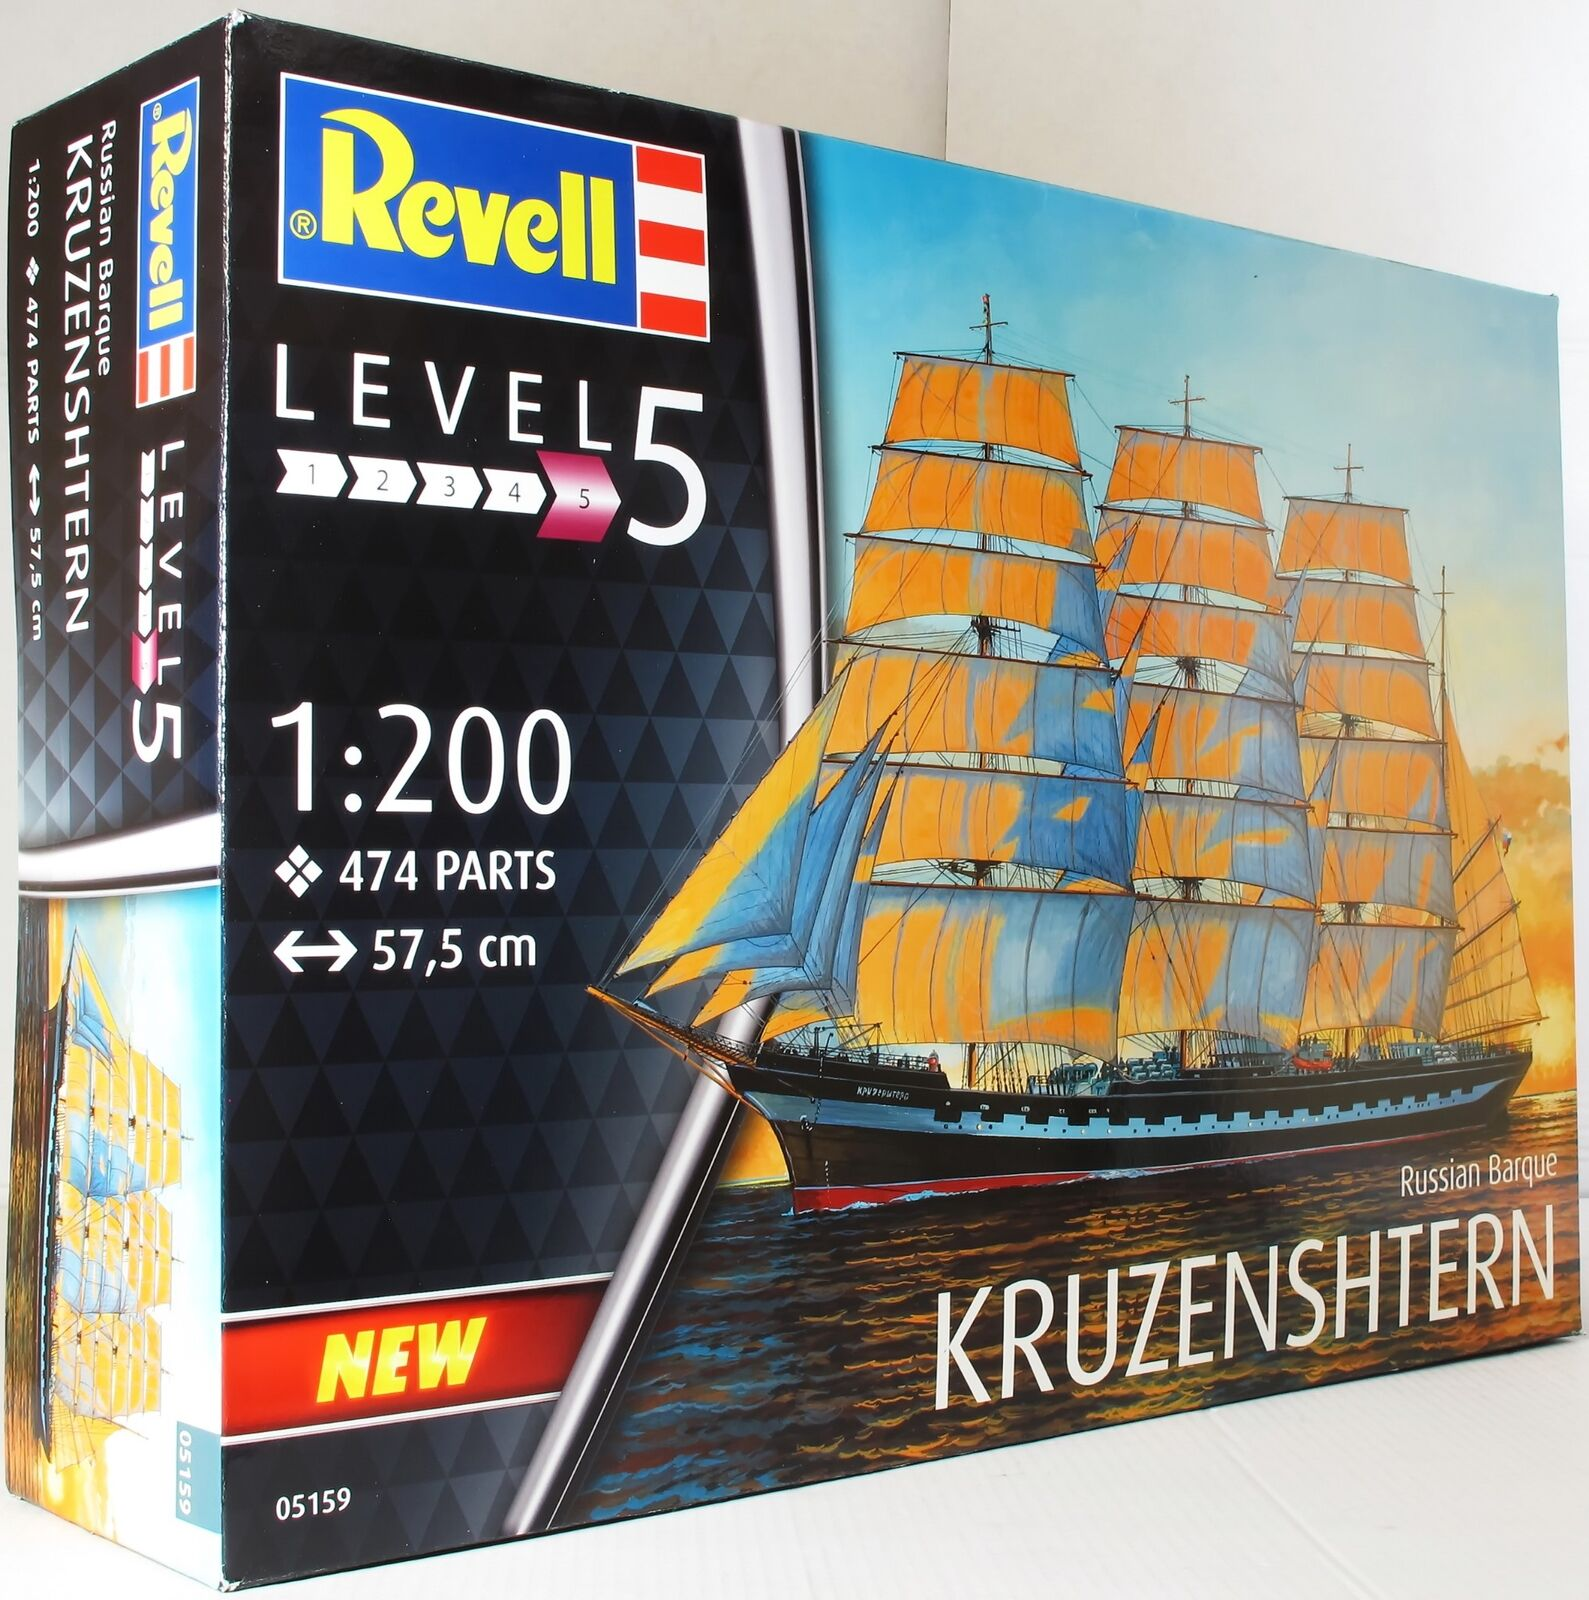 Revell 1 200 05159 Russian Barque 'Kruzenshtern' Model Ship Kit